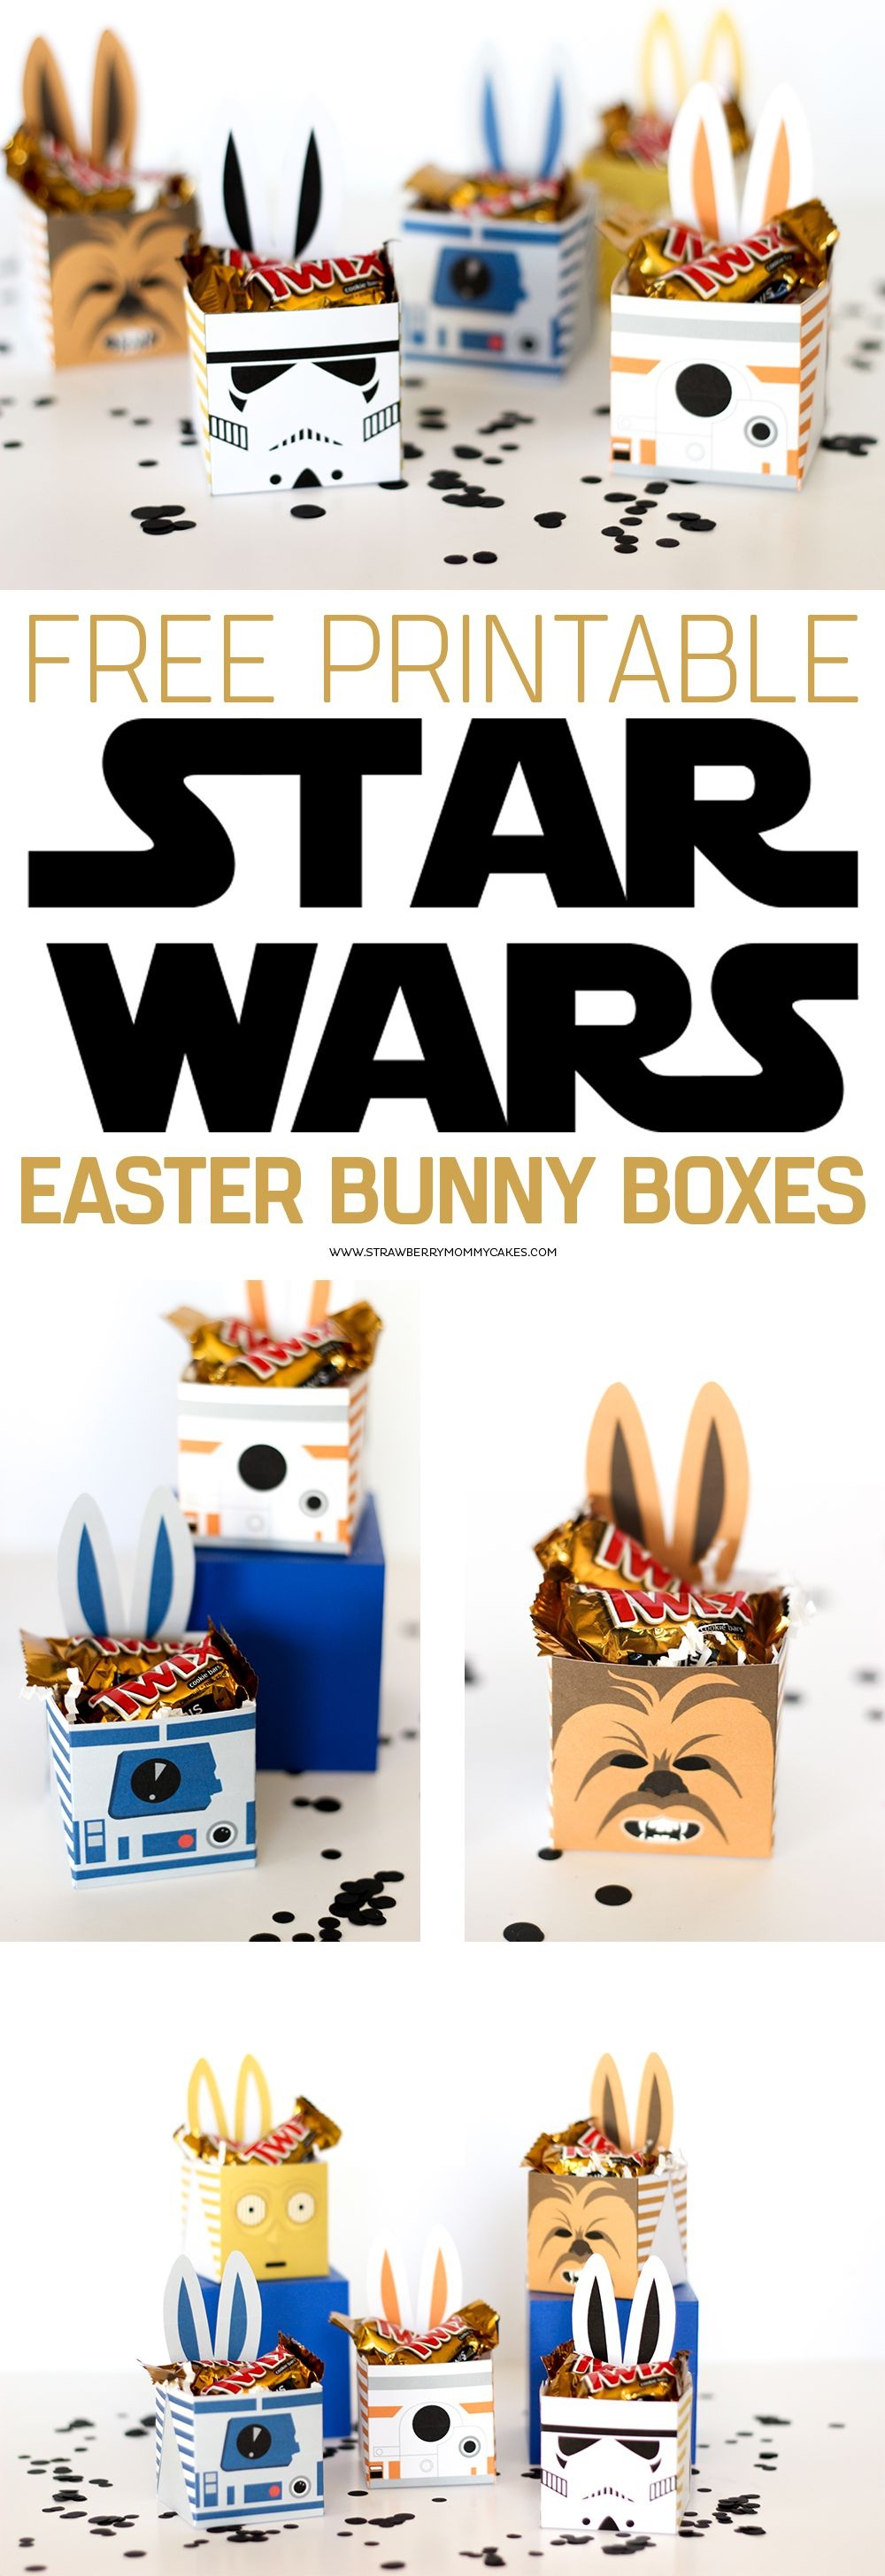 May The Force Be With You This Easter With These Fun Star Wars - May The Force Be With You Free Printable